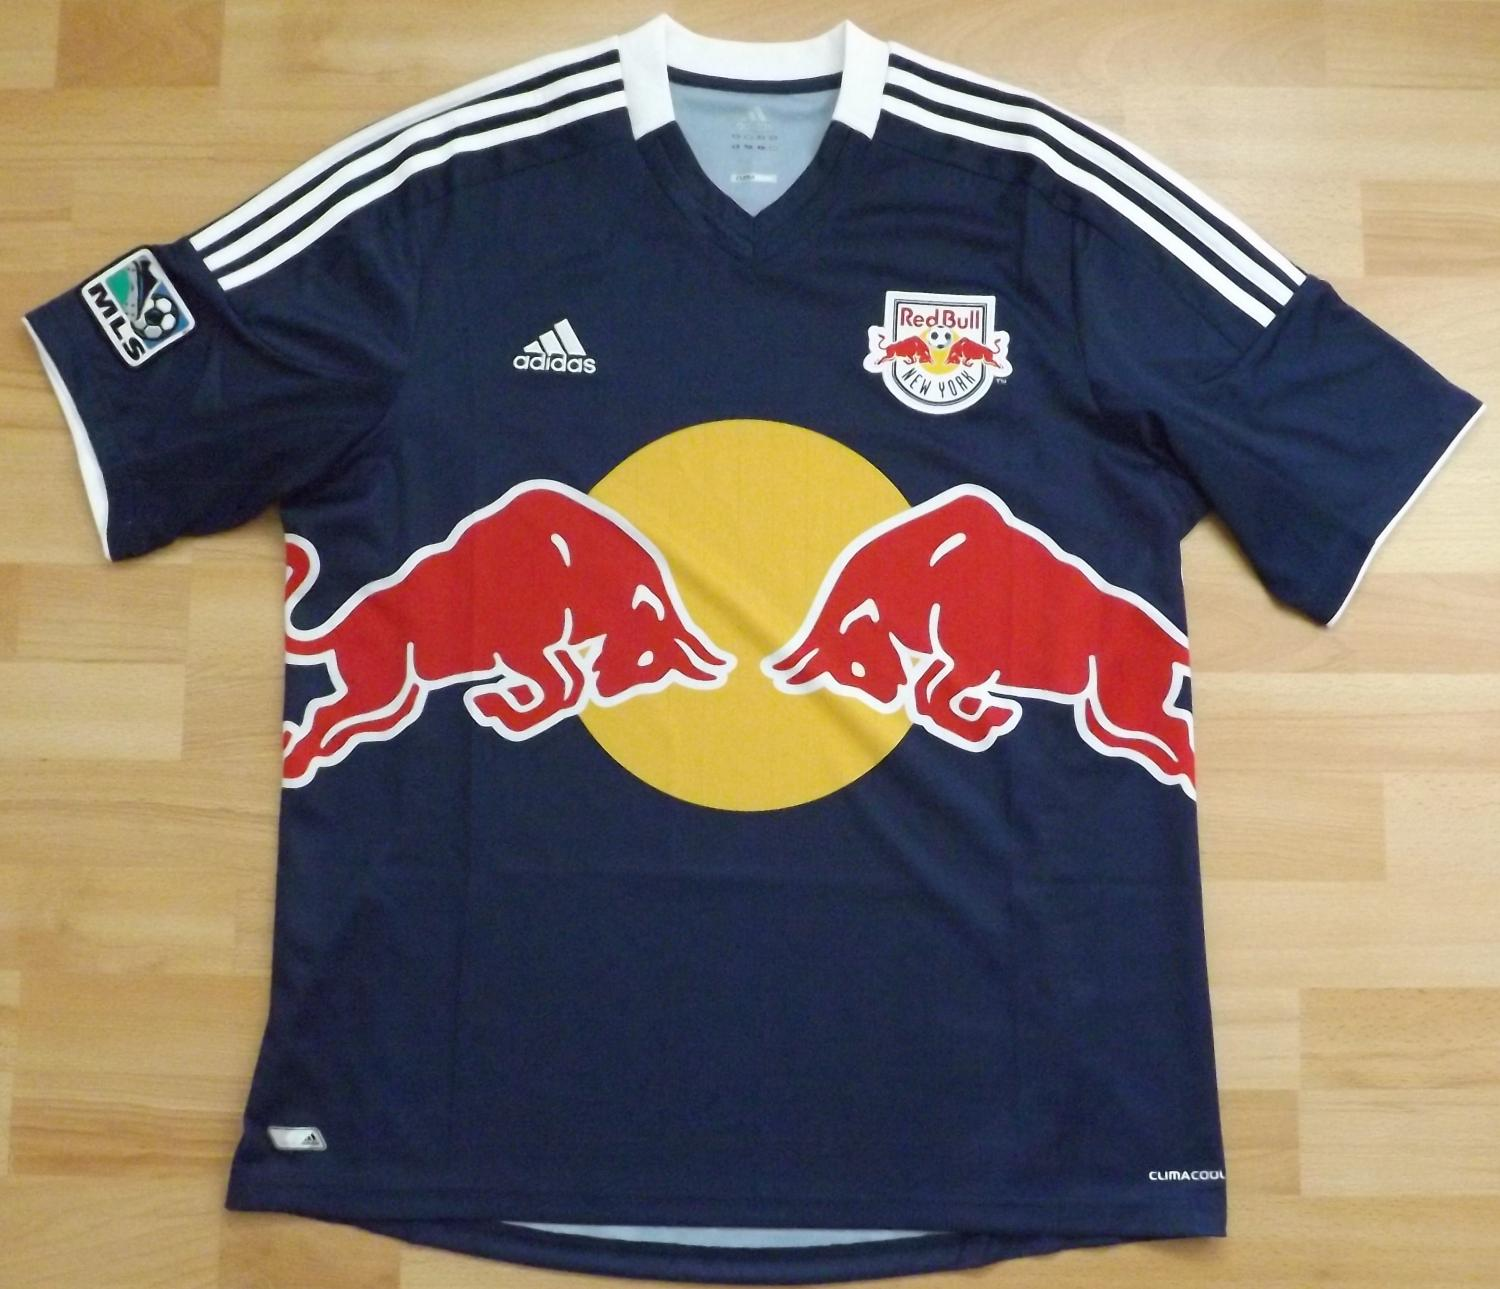 3bad32783 New York Red Bulls Away camisa de futebol 2012 - 2014.